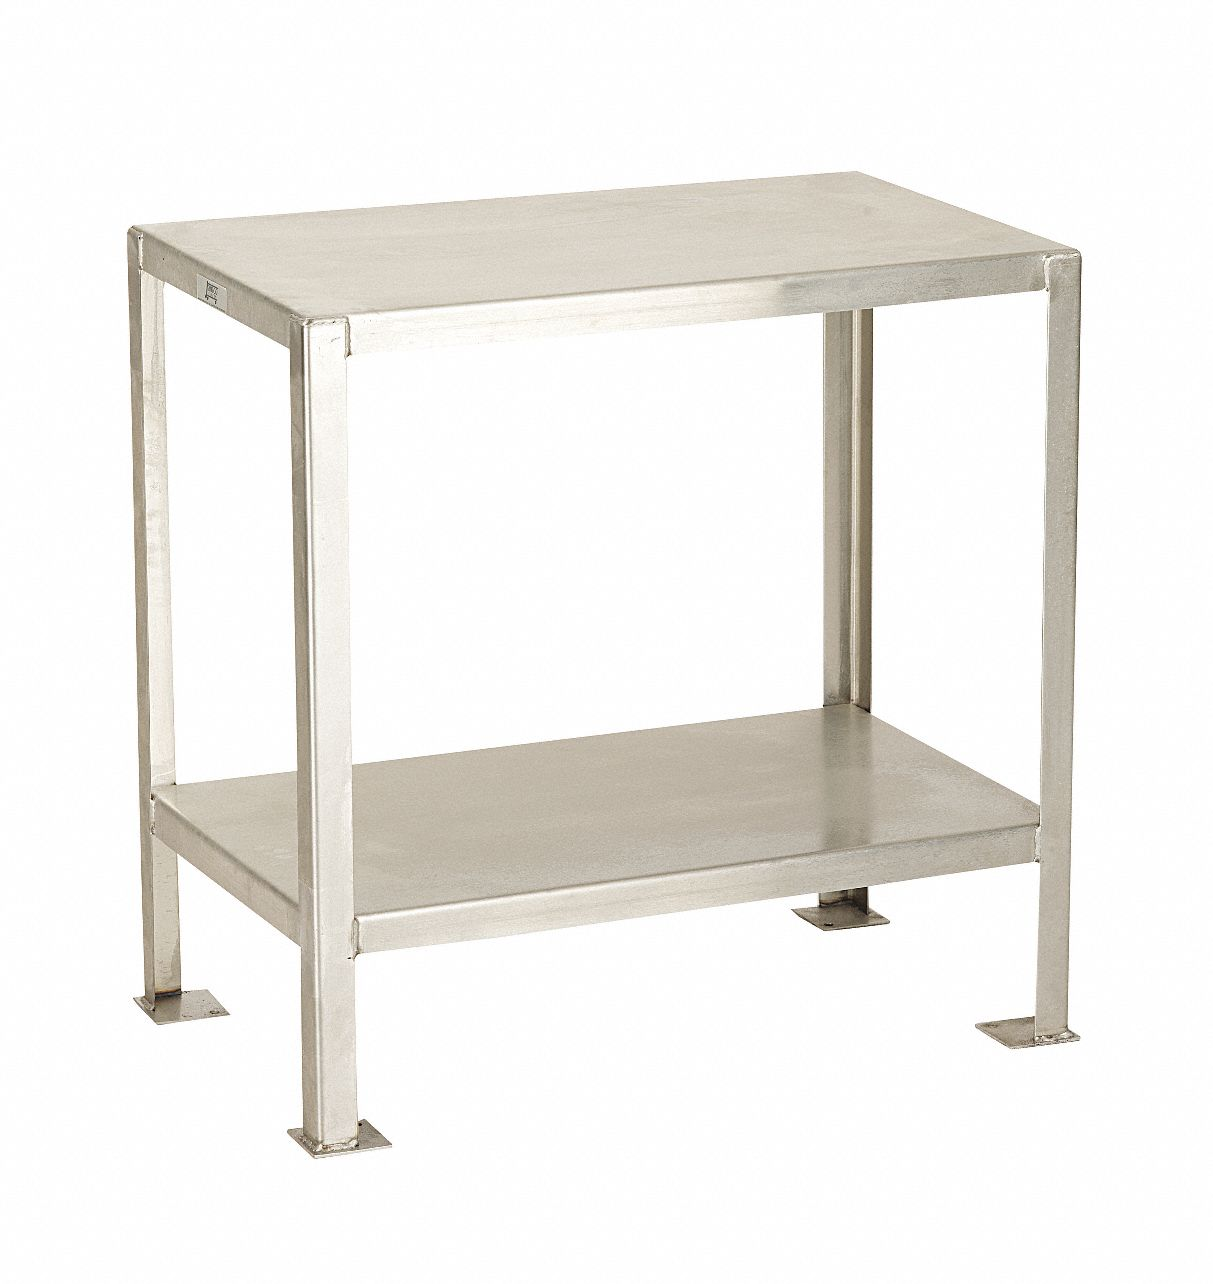 Fixed Height Work Table, Stainless Steel, 18 in Depth, 30 in Height, 30 in Width,1,200 lb Load Capac